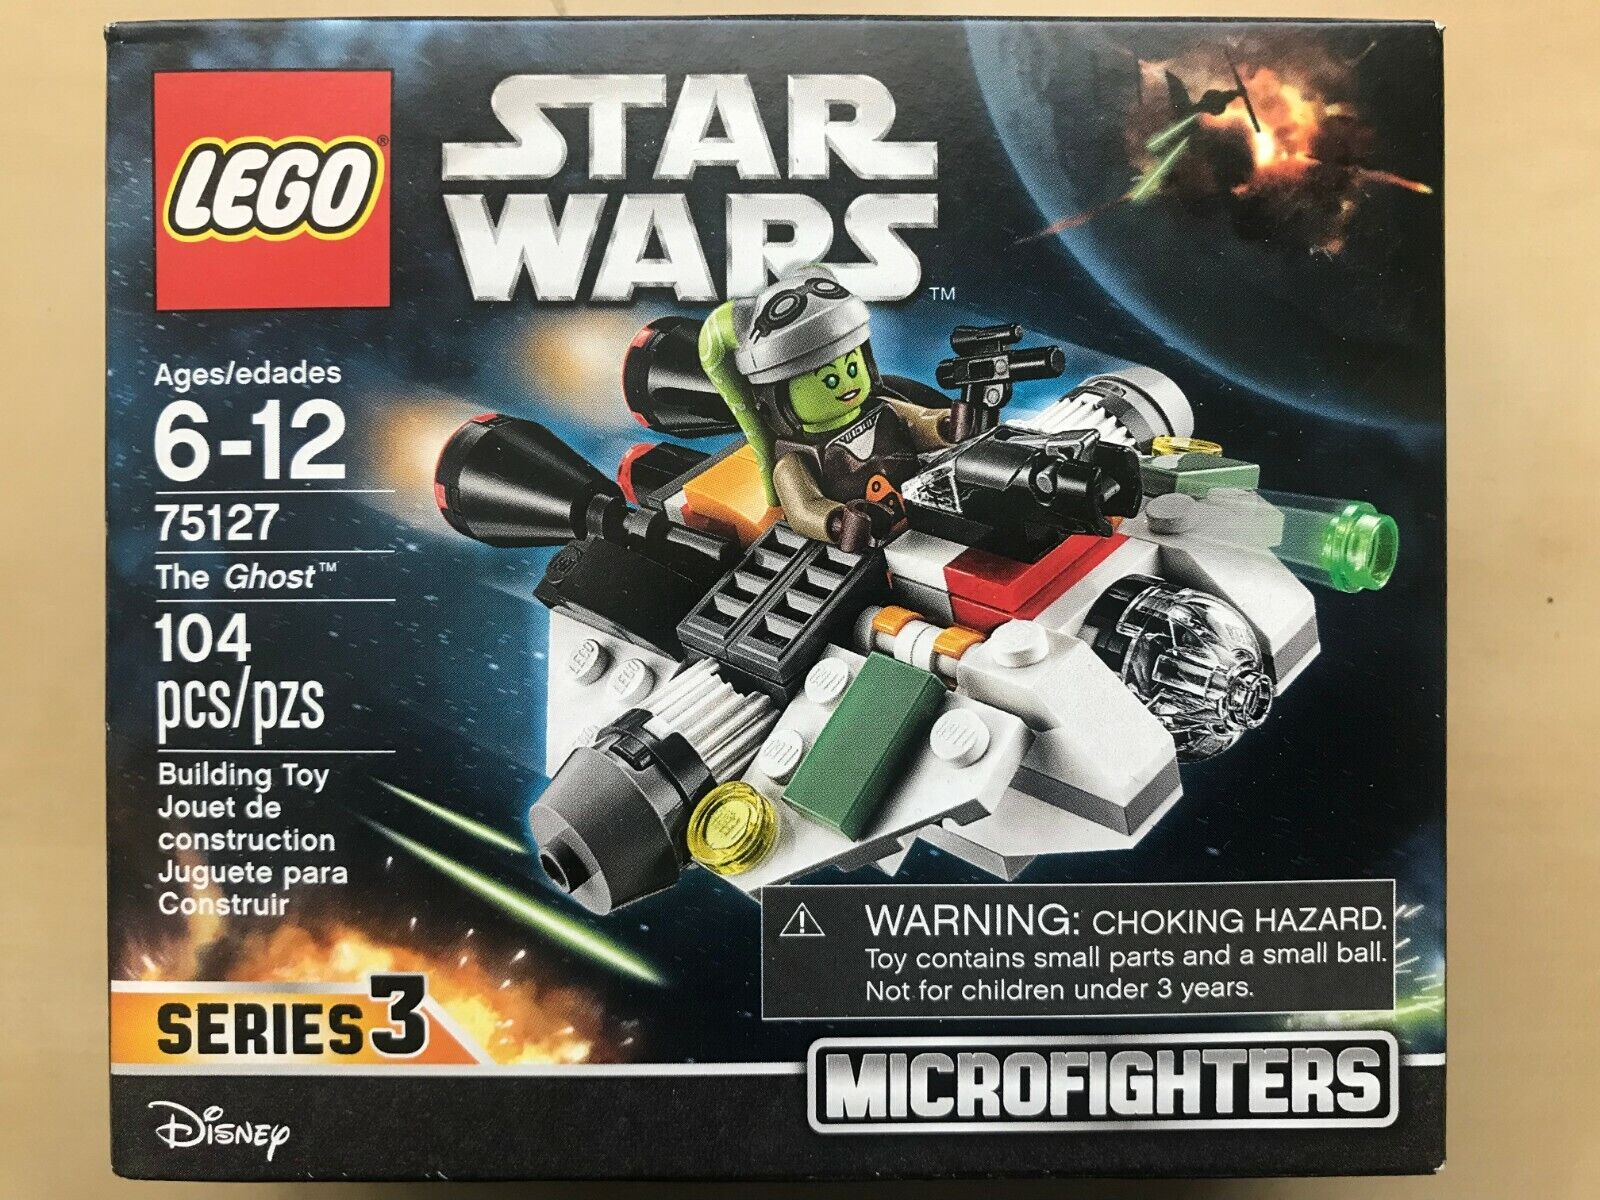 Microfighters Series 75127 The Ghost LEGO STAR WARS - Brand New in Box